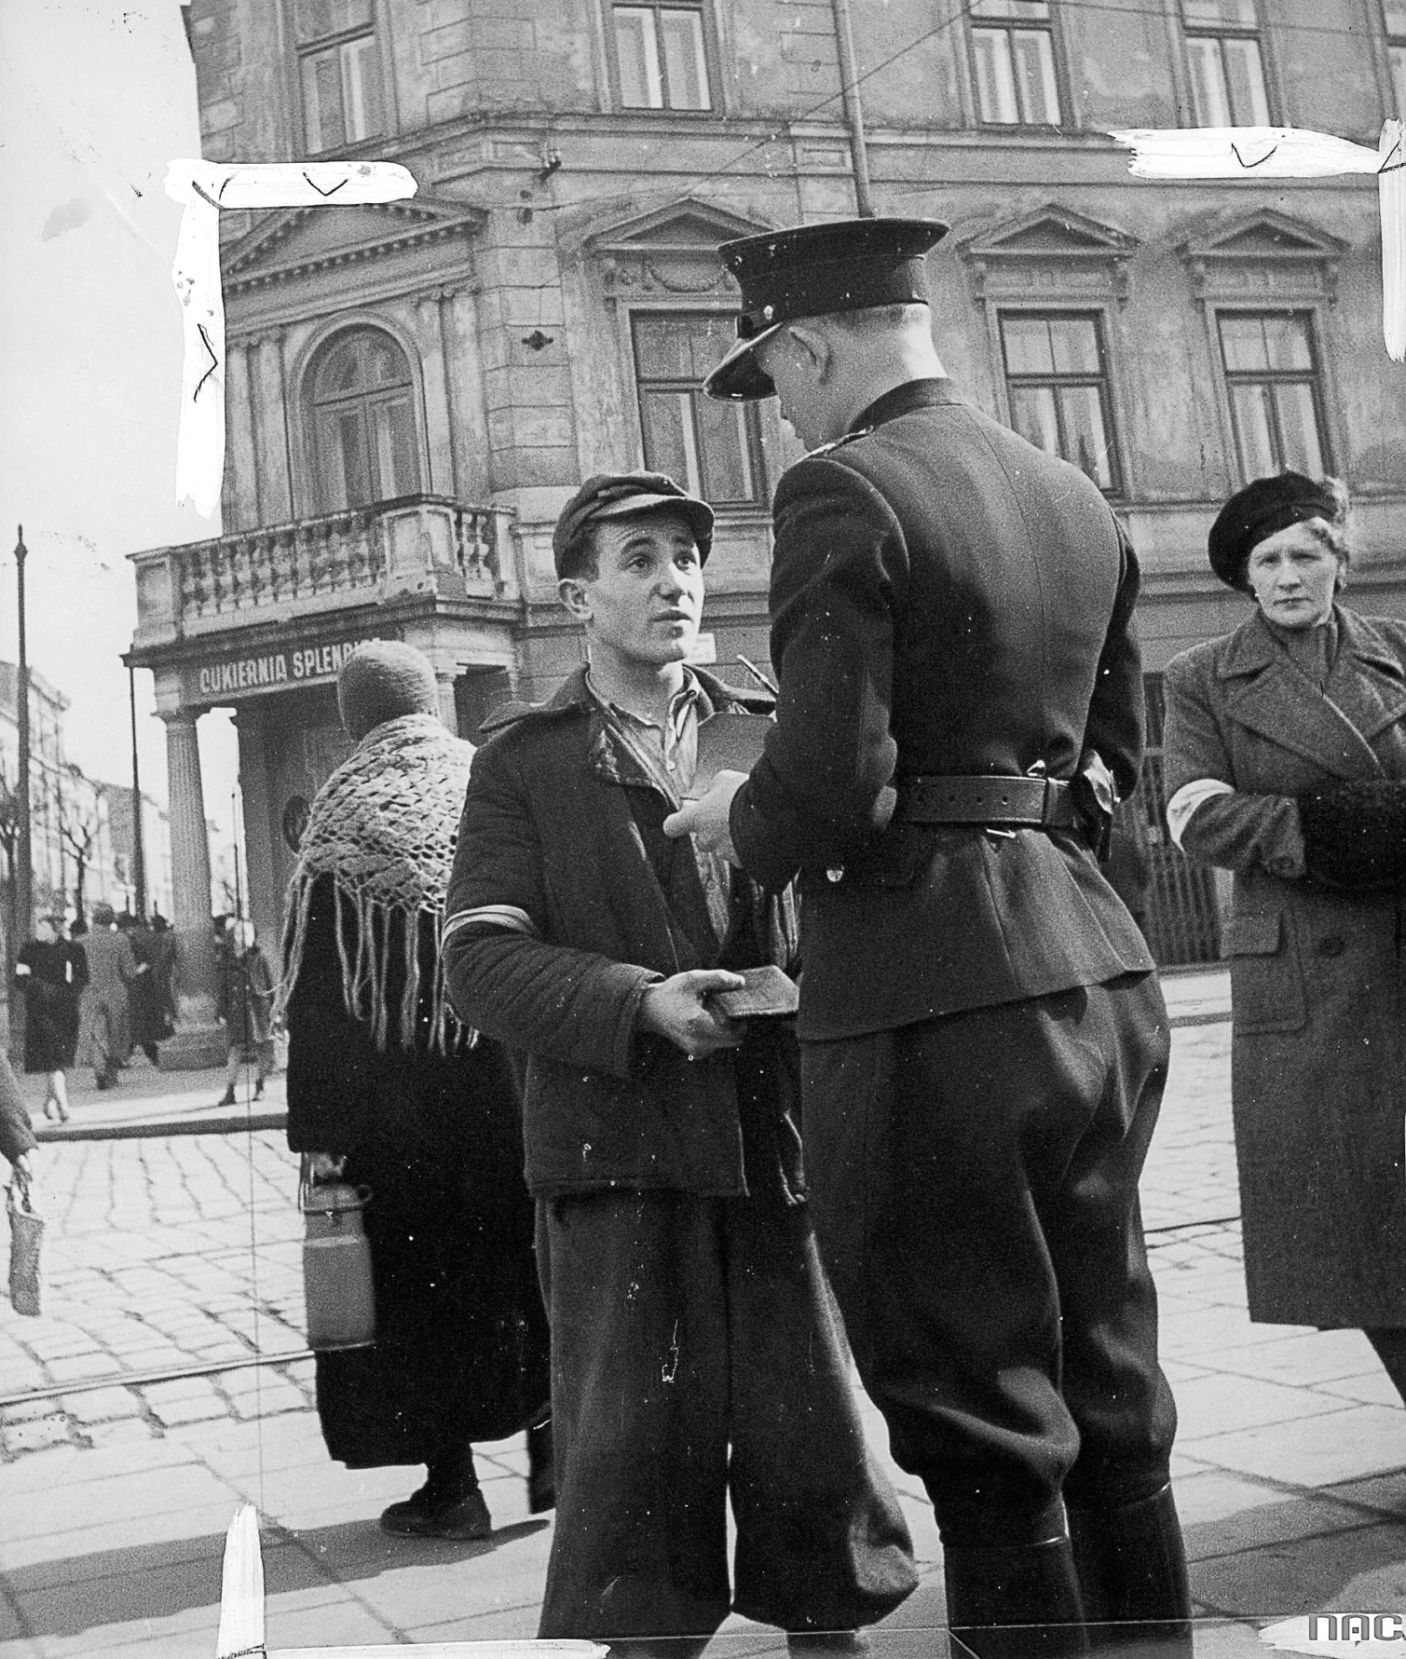 Polish police officer checks a Jewish man's documents, Krakow Ghetto, 1941. (Polish National Archive)